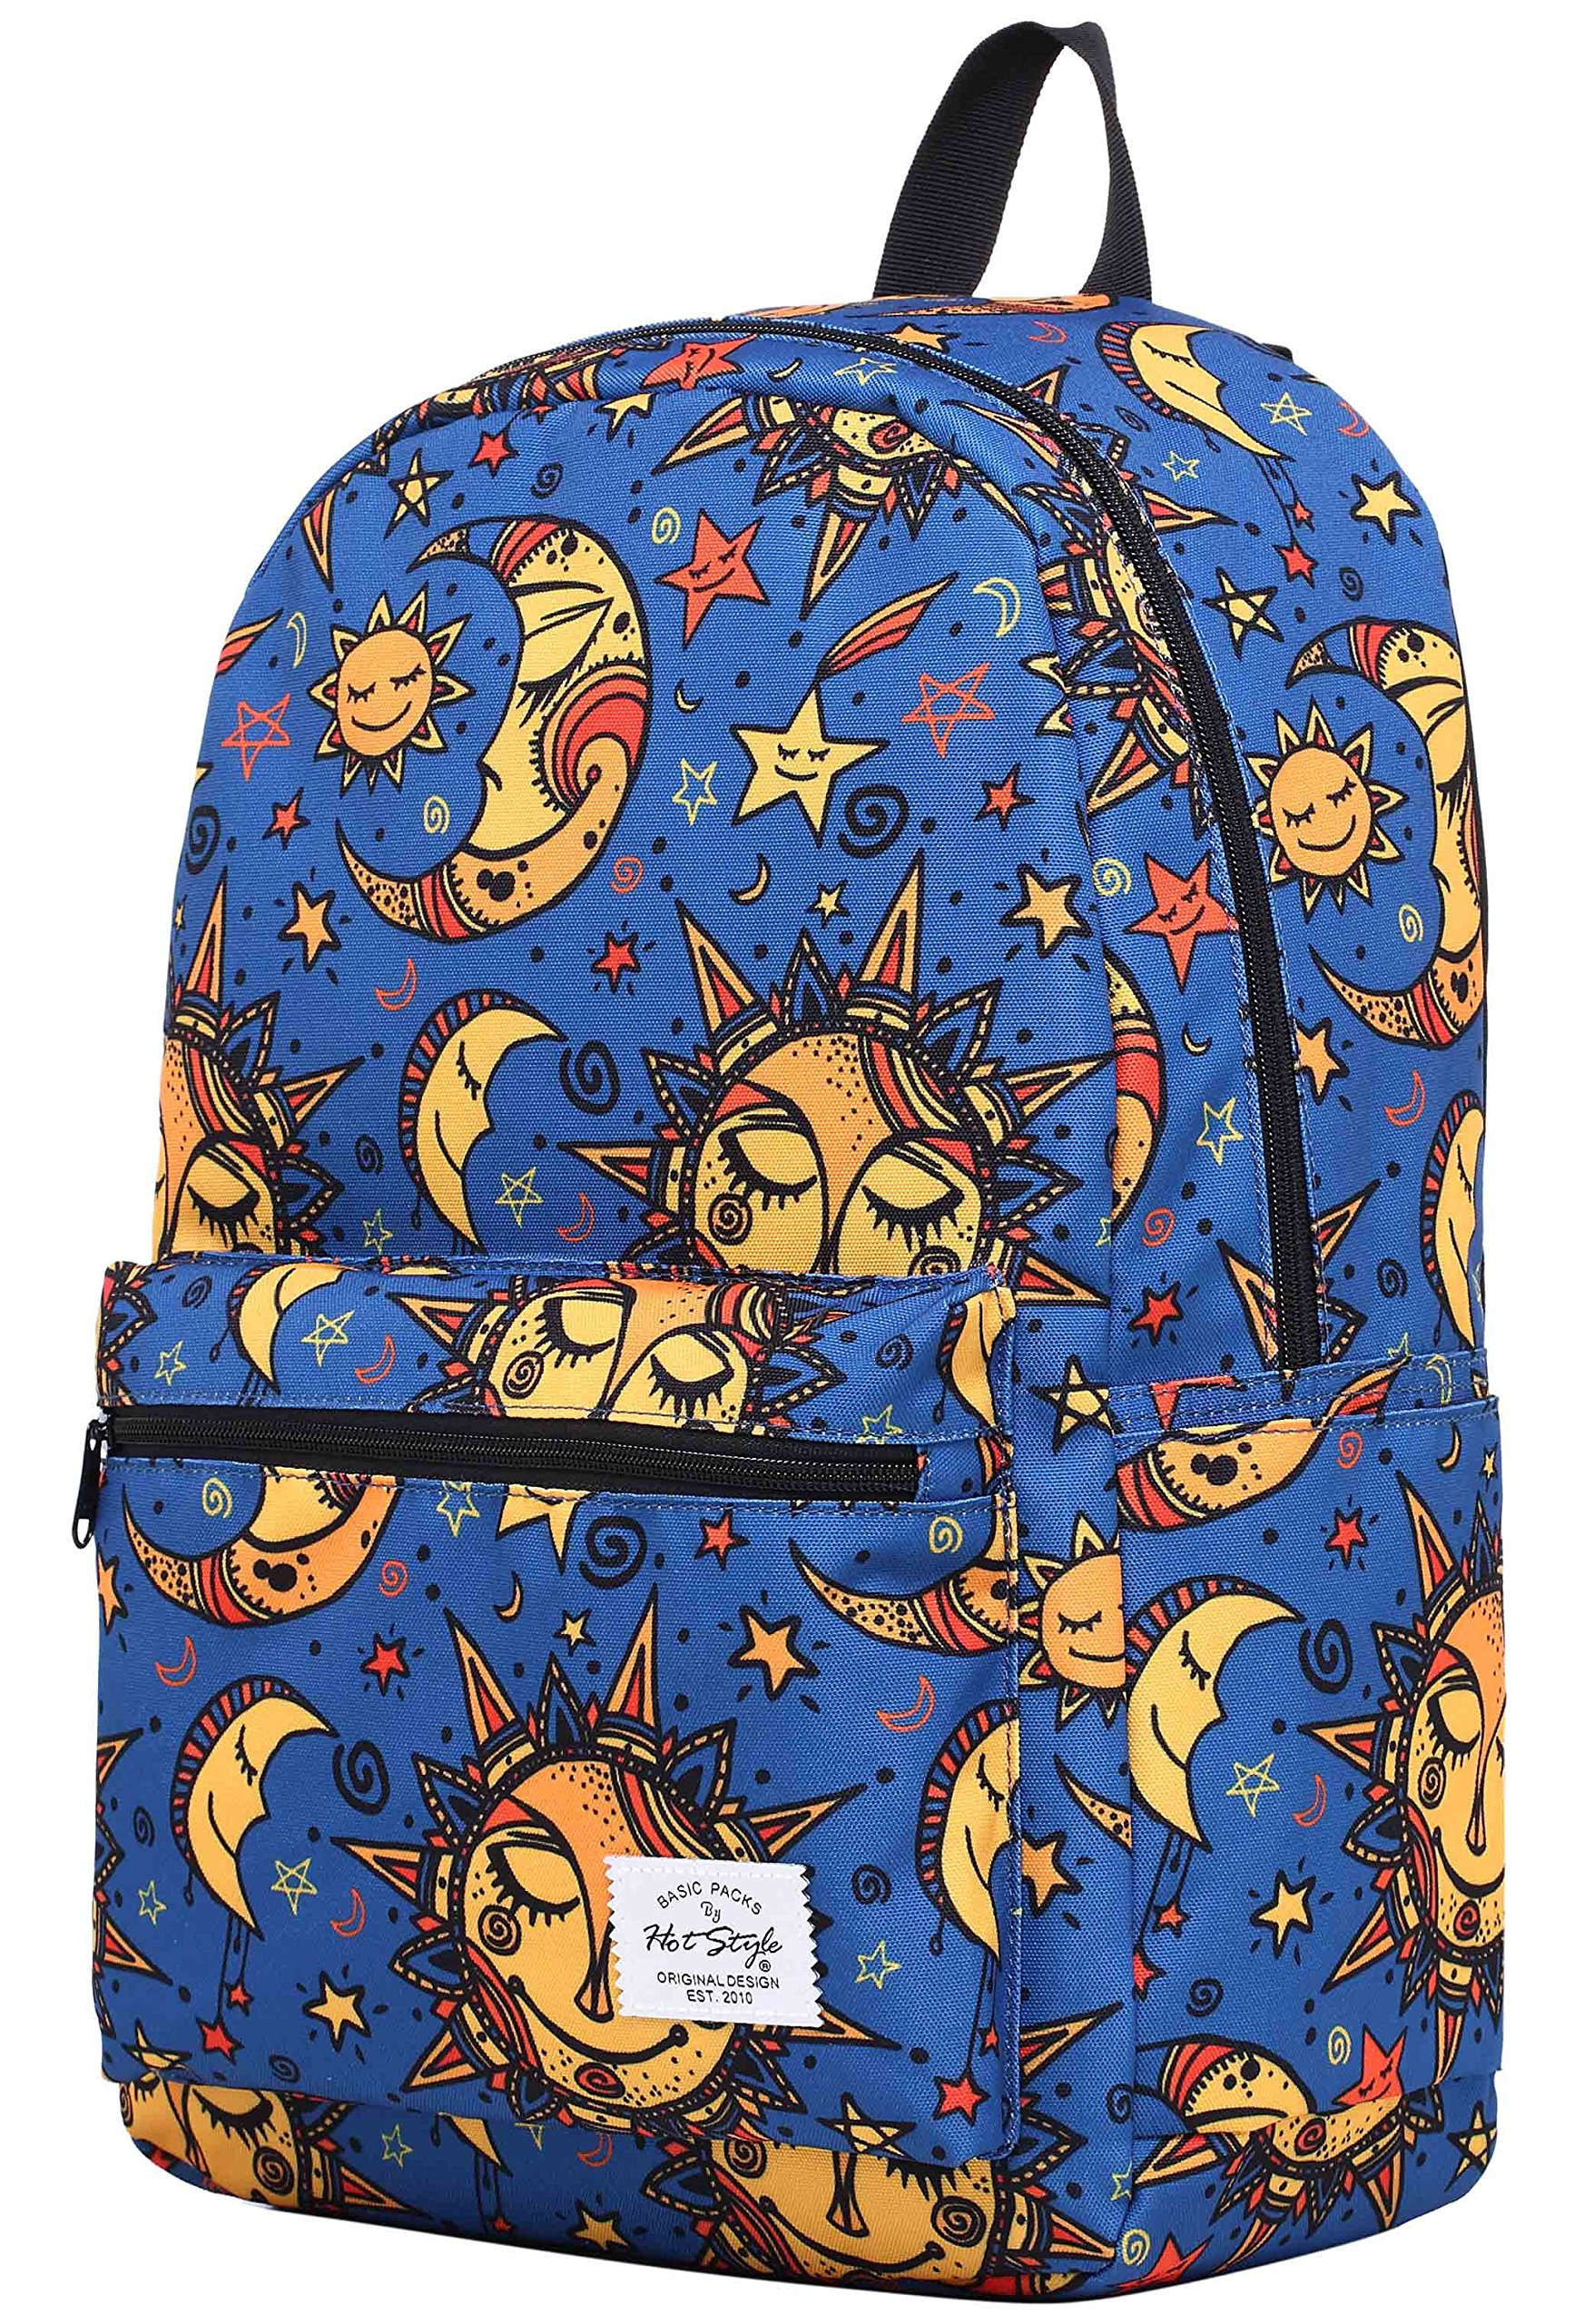 hotstyle TRENDYMAX Cute Backpack for School | 16''x12''x6'' | Holds 15.4-inch Laptop | TribalToten